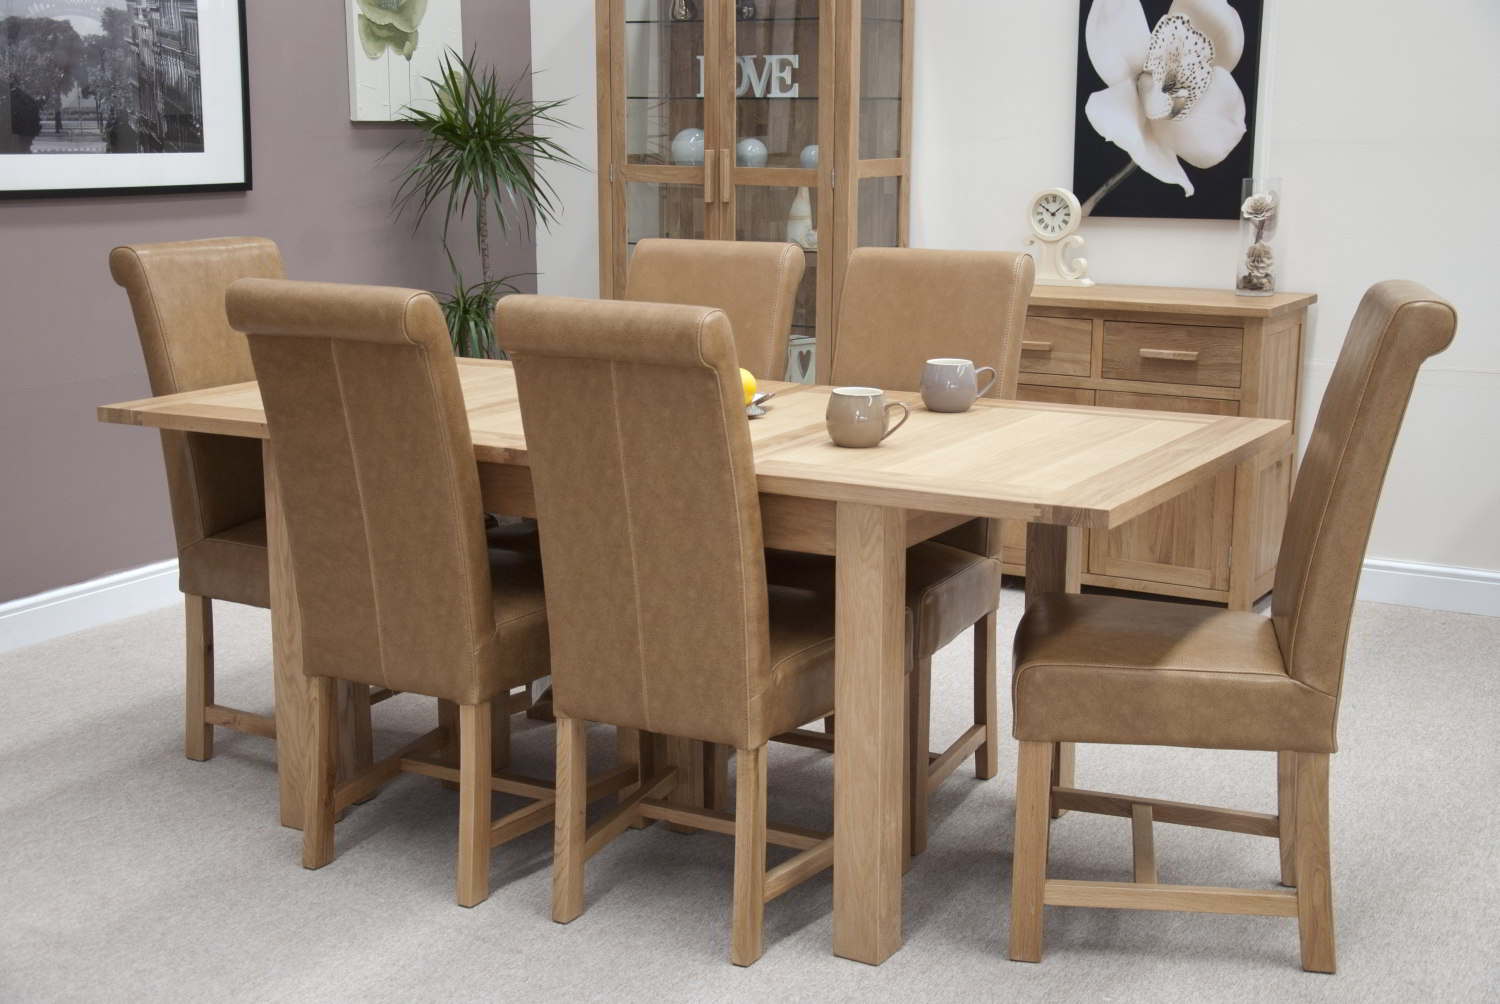 Eton solid oak dining room furniture extending dining  : 53746 from www.ebay.co.uk size 1500 x 1004 jpeg 234kB